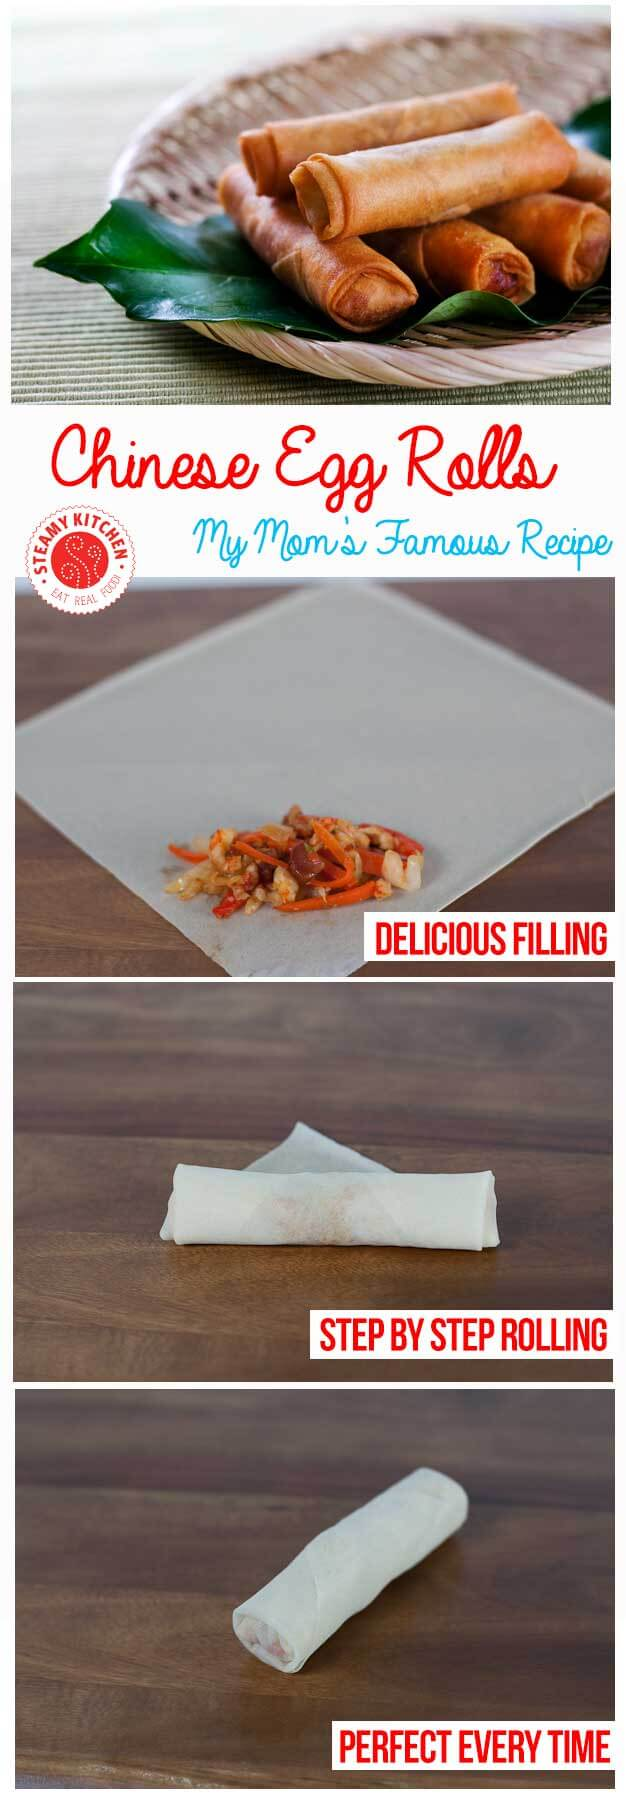 Mother's Famous Chinese Egg Rolls Recipe + step by step photos on how to wrap perfectly | steamykitchen.com ~ http://steamykitchen.com